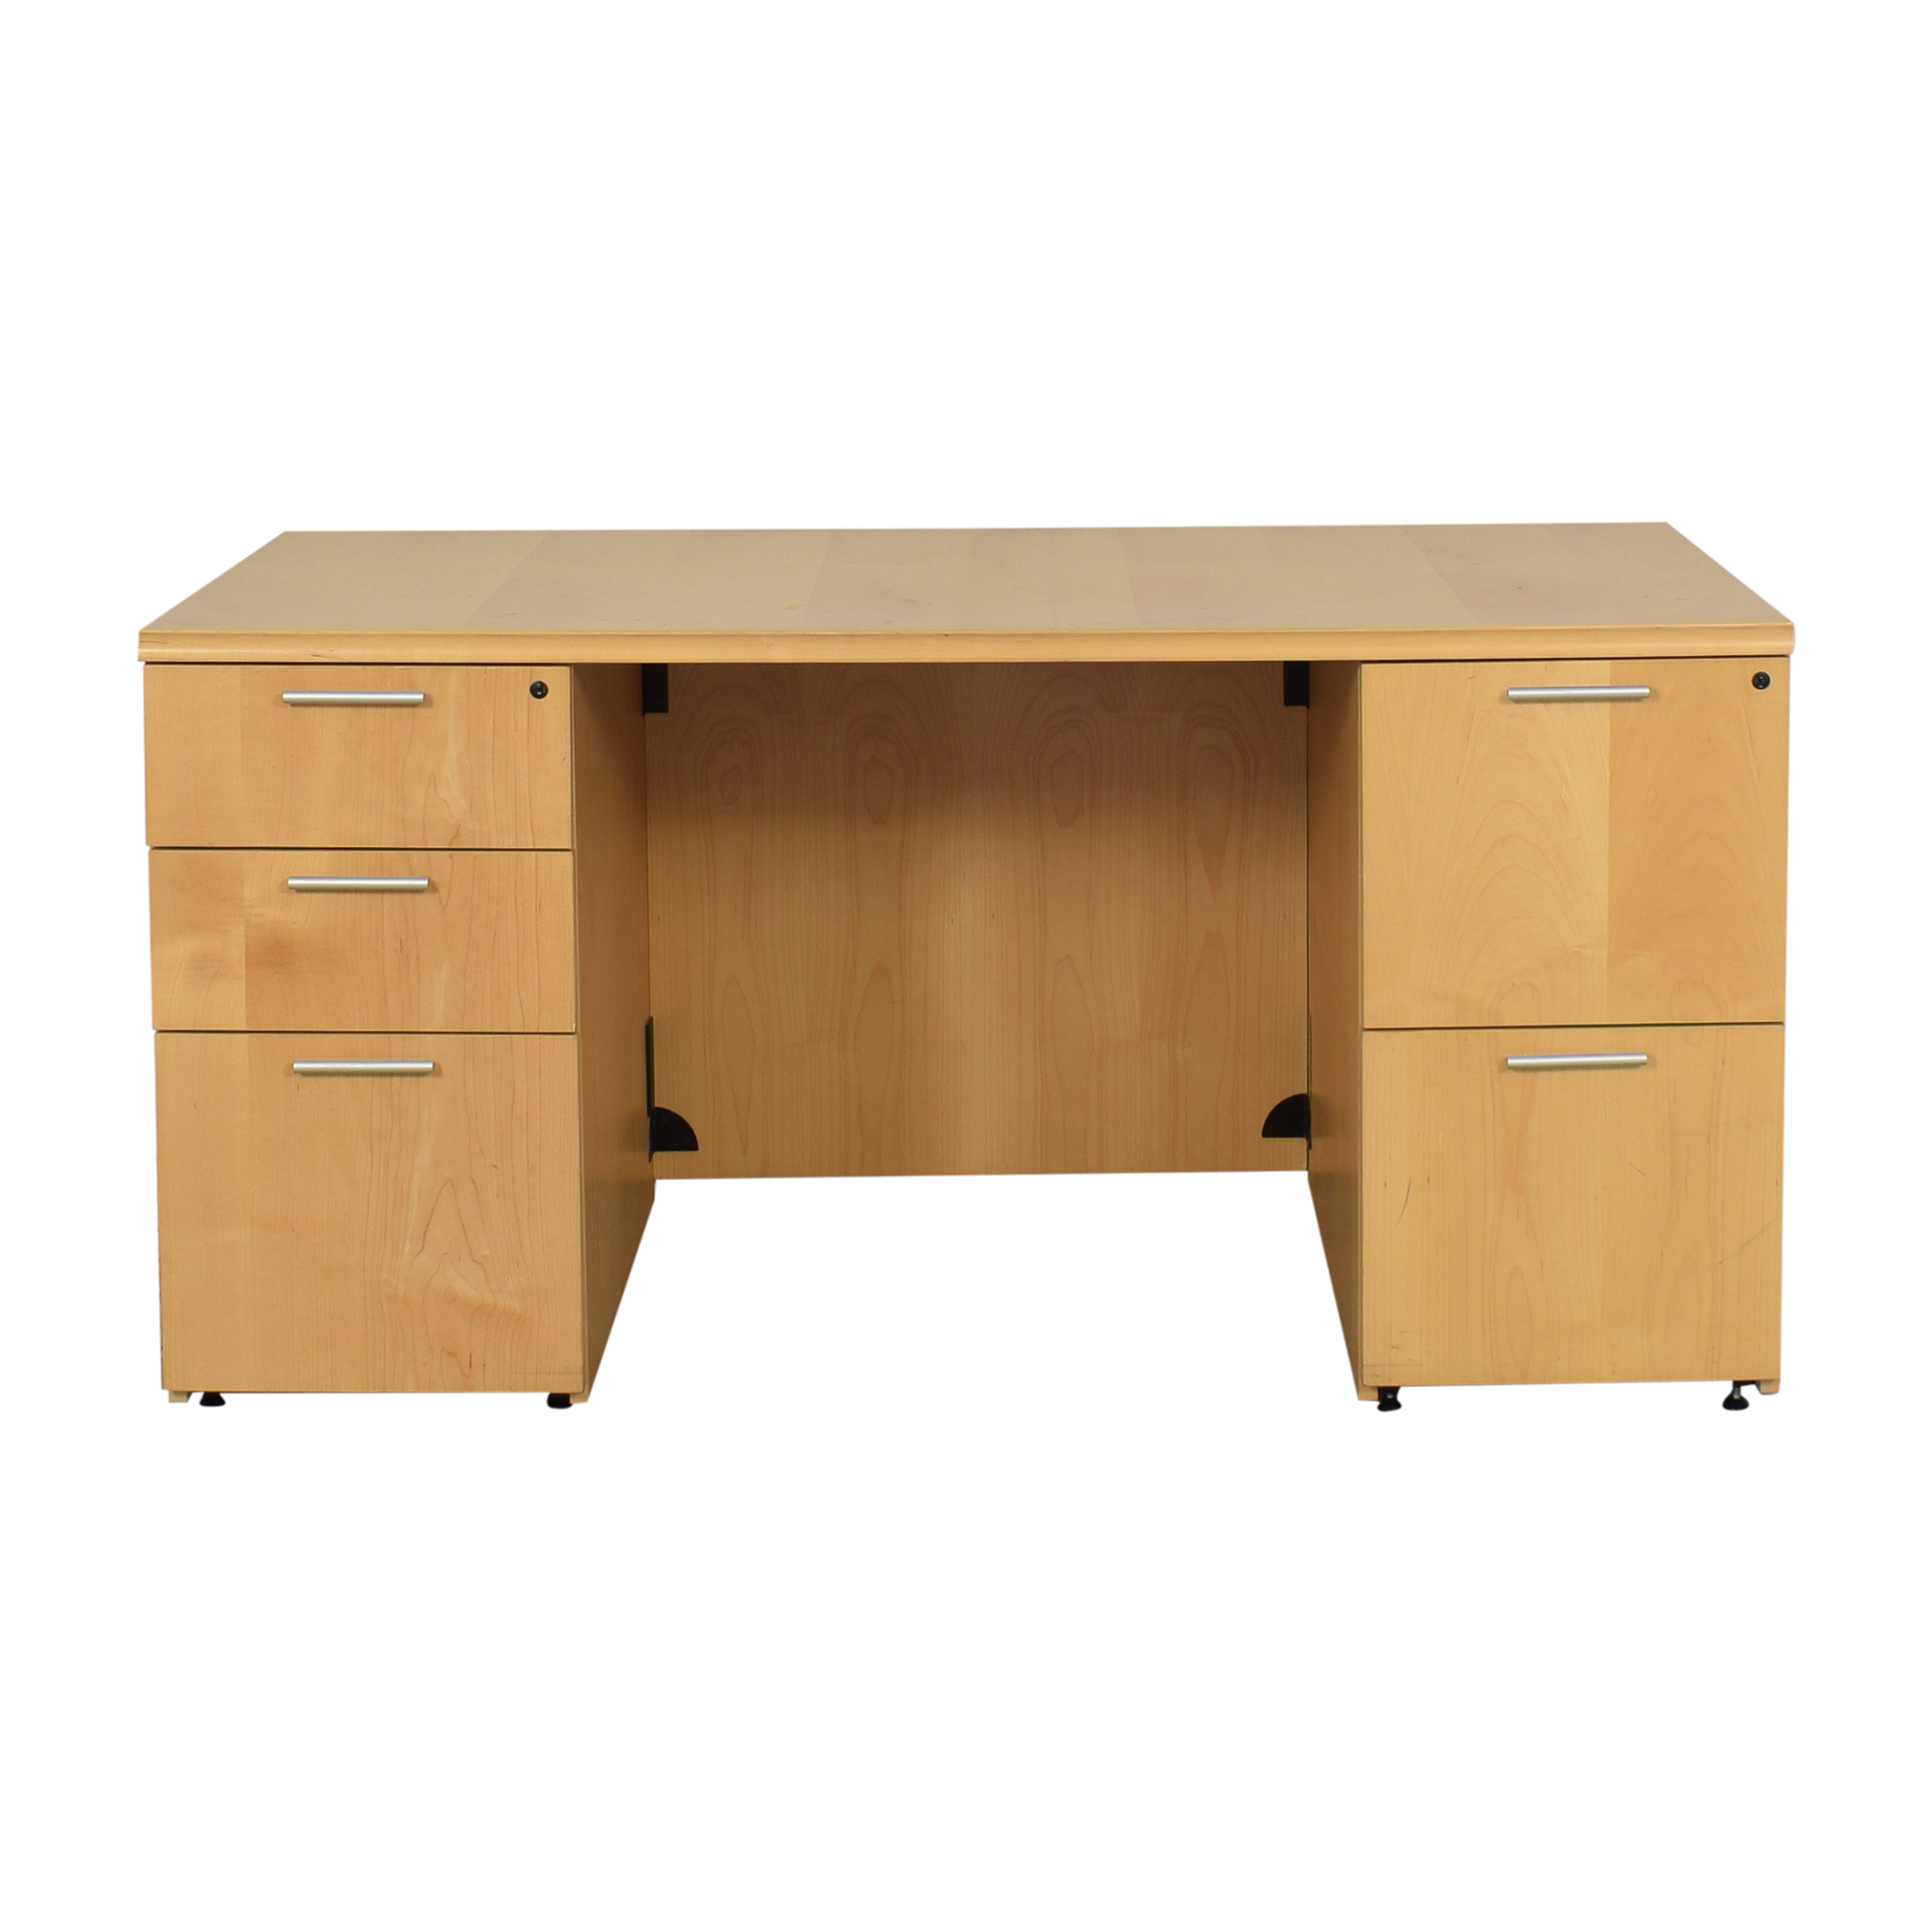 Krug Pedastal Desk sale